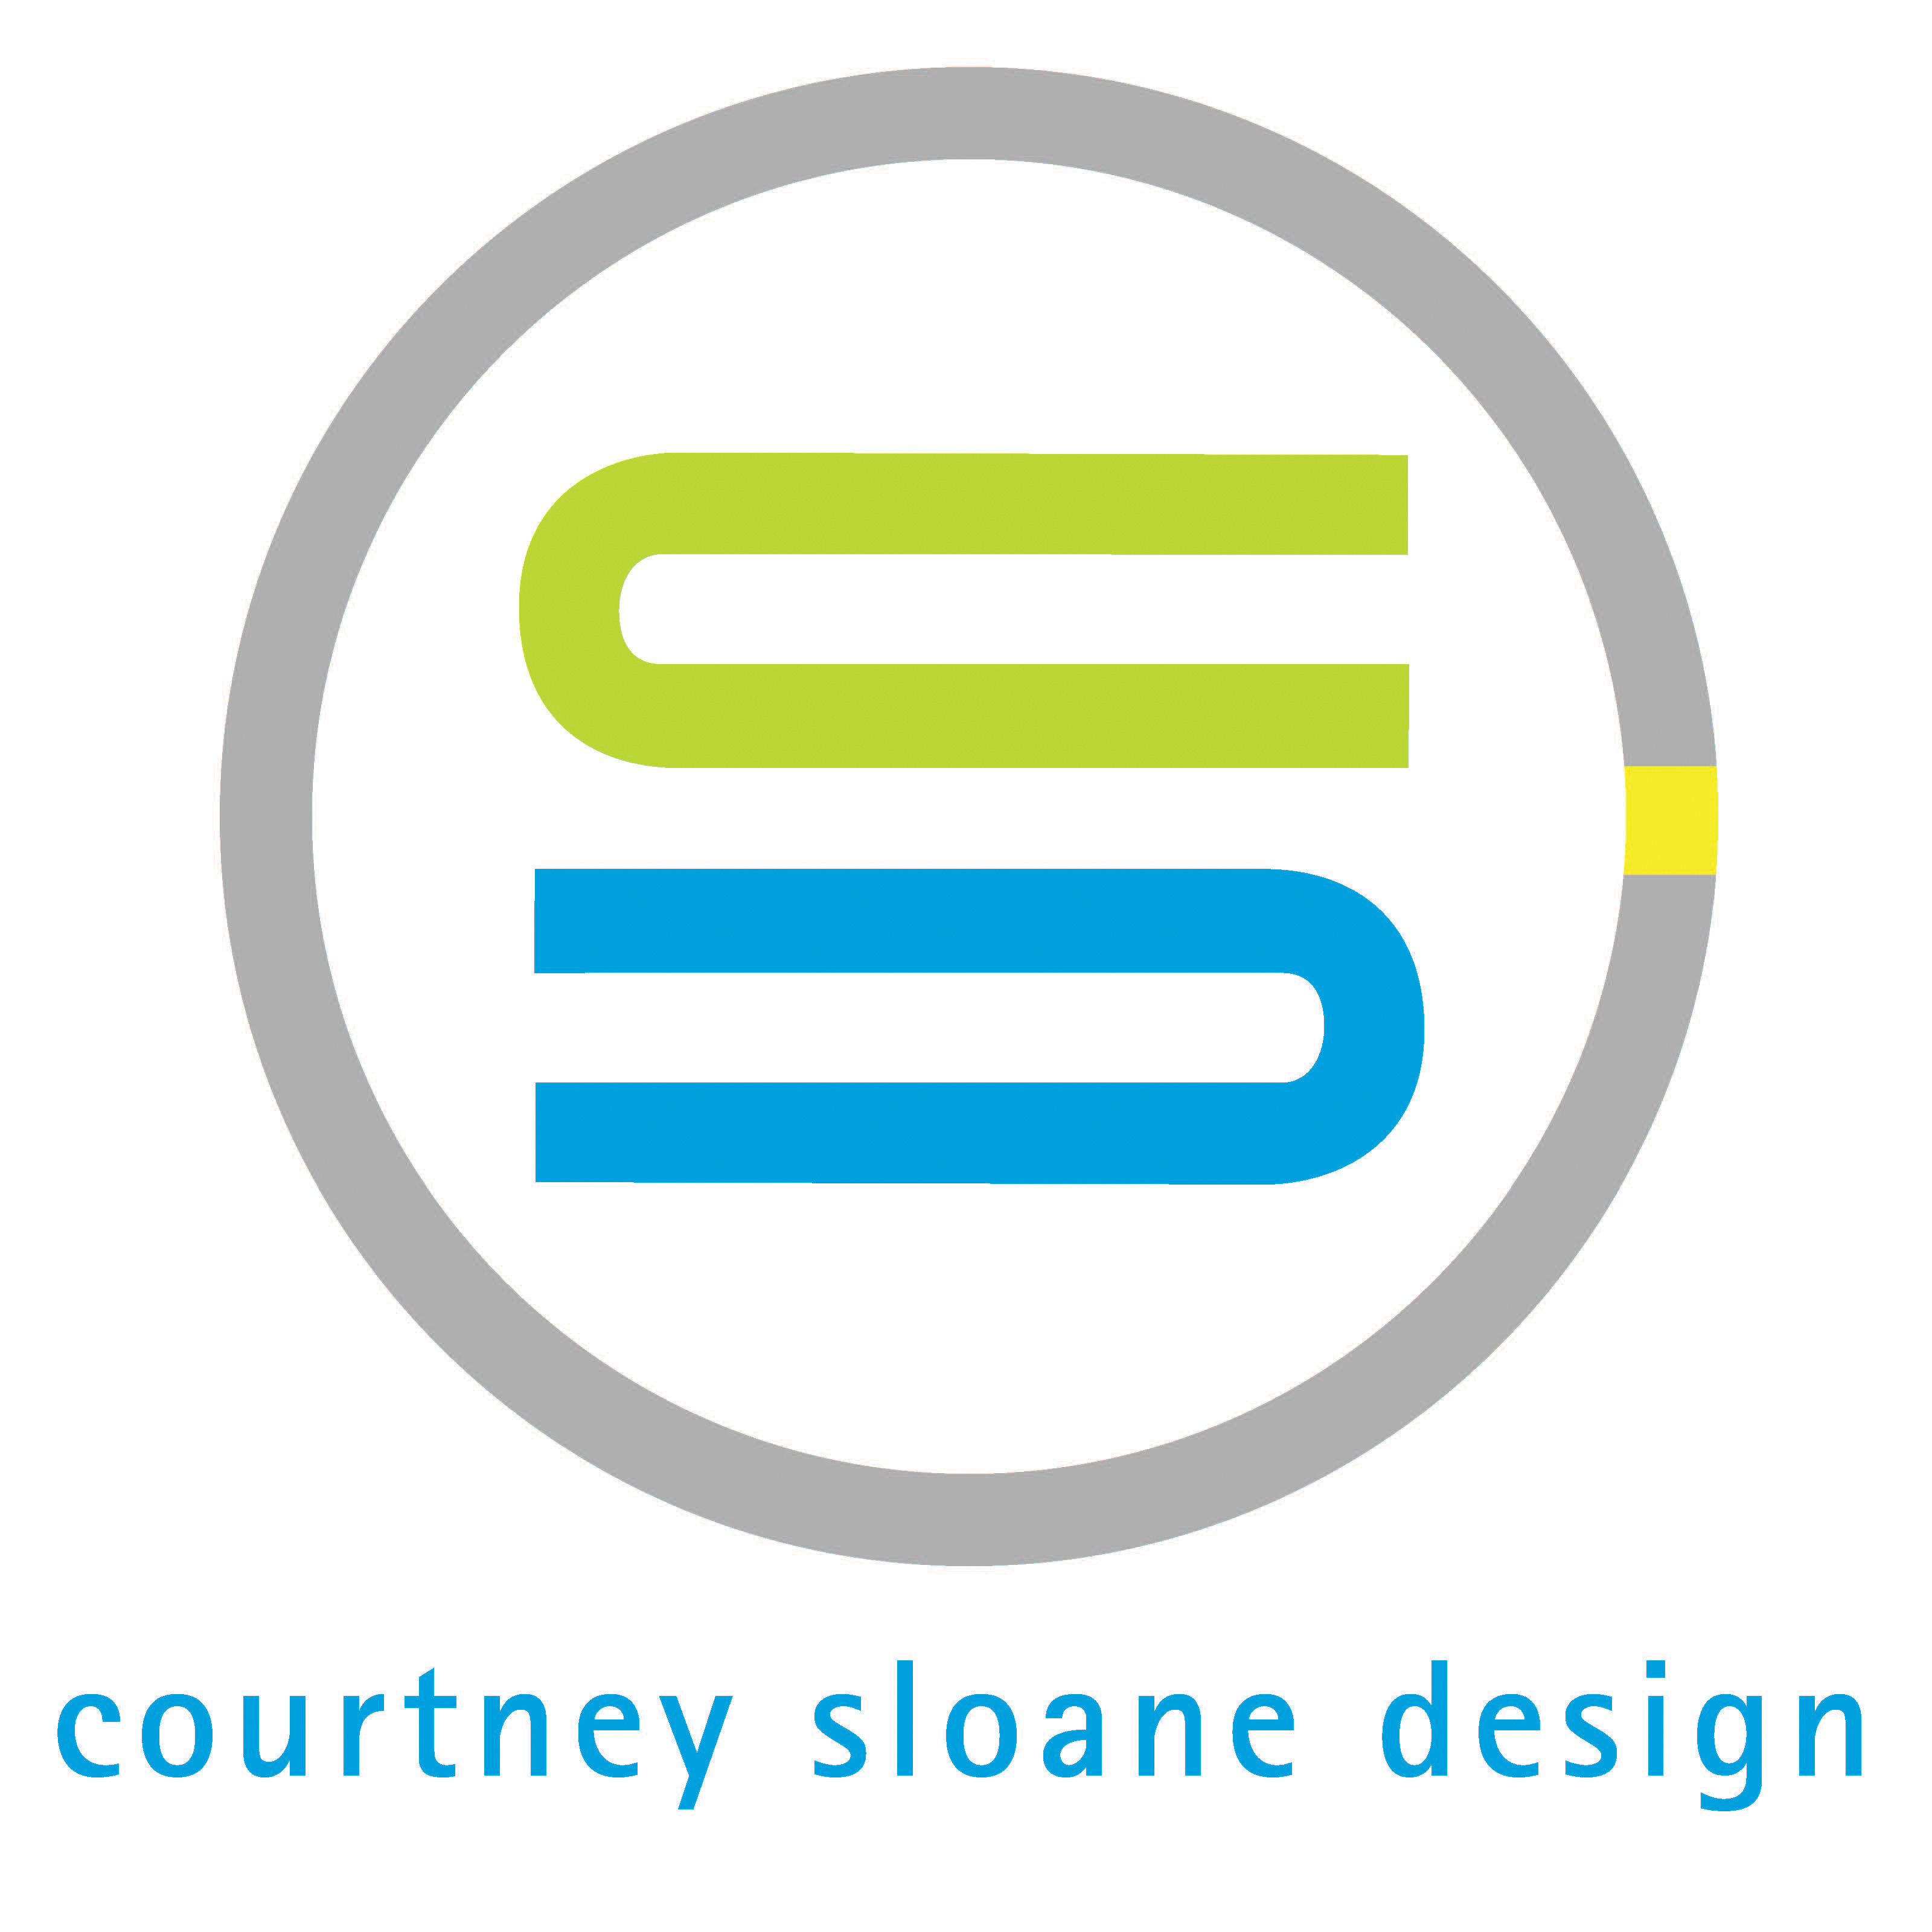 Courtney Sloane Design